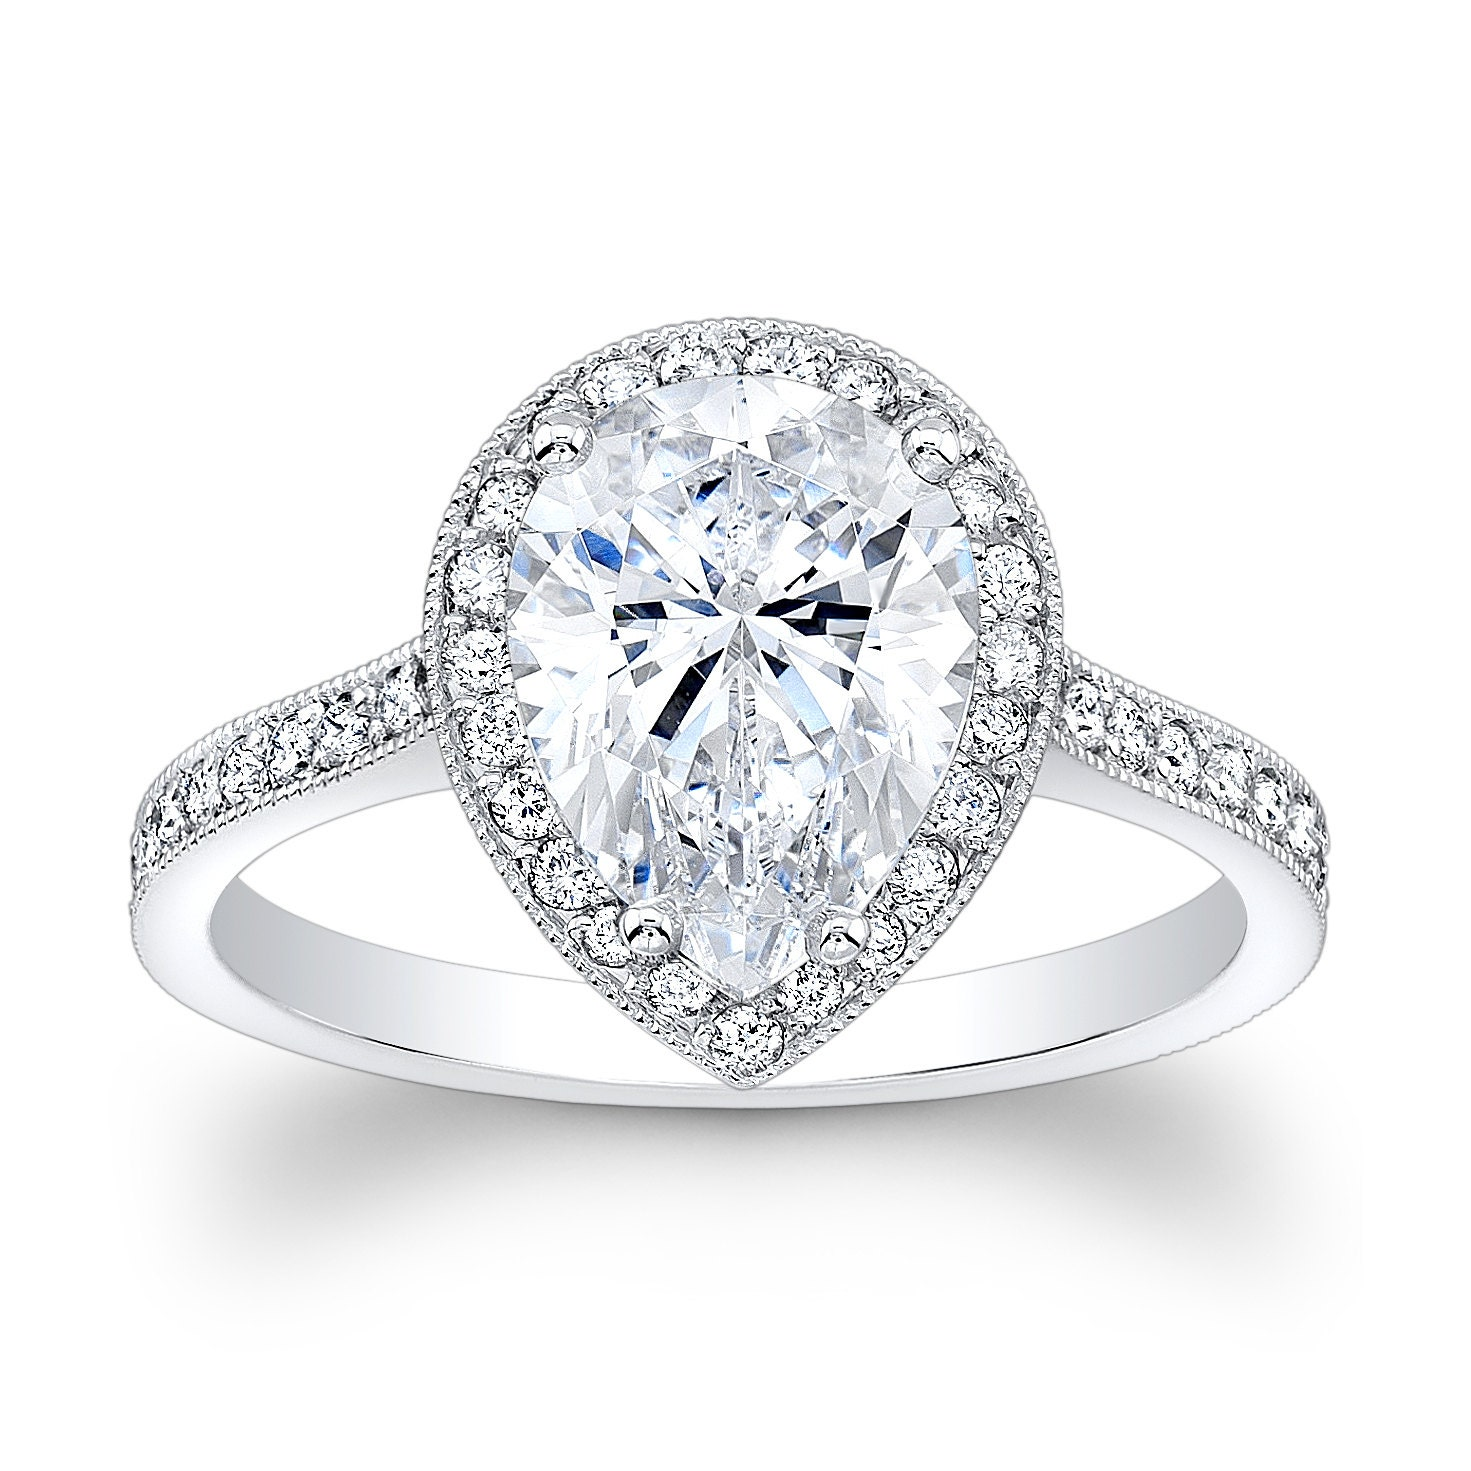 Women's 14kt white gold vintage engagement ring with 2ct